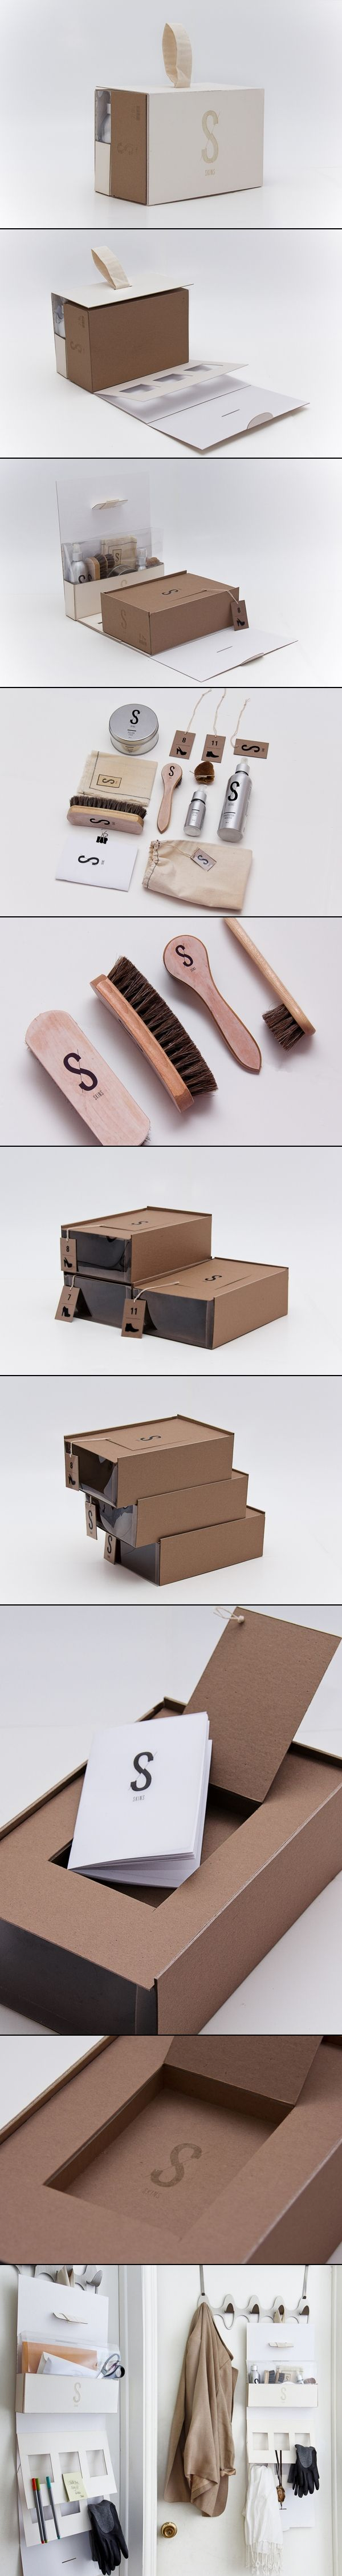 SKINS Shoe #Packaging #Design | Jiani Lu so cool makes me want to buy shoes you have to polish